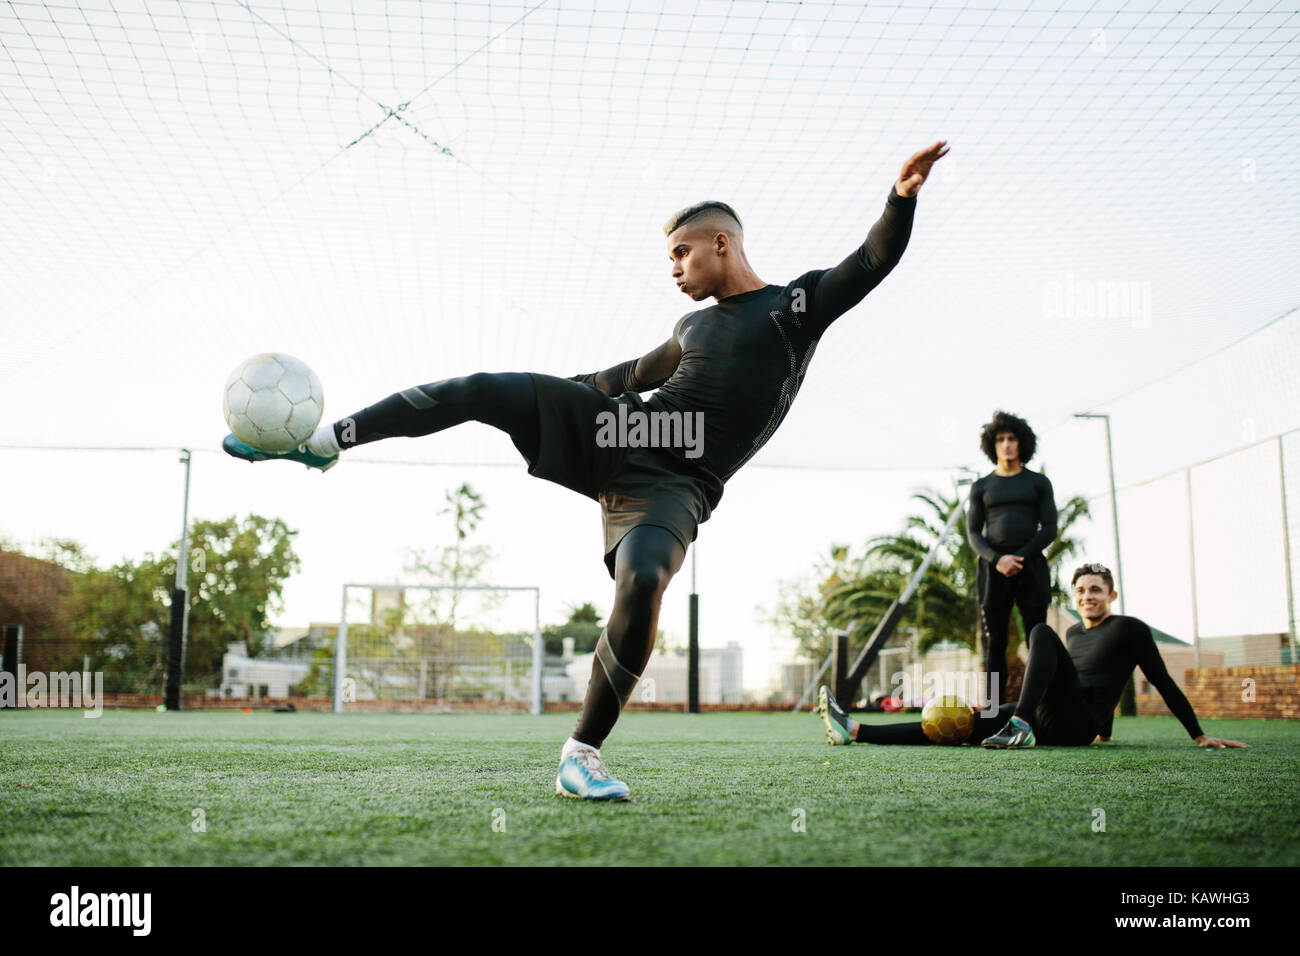 Soccer player kicking ball. Young footballer practicing on football field. - Stock Image